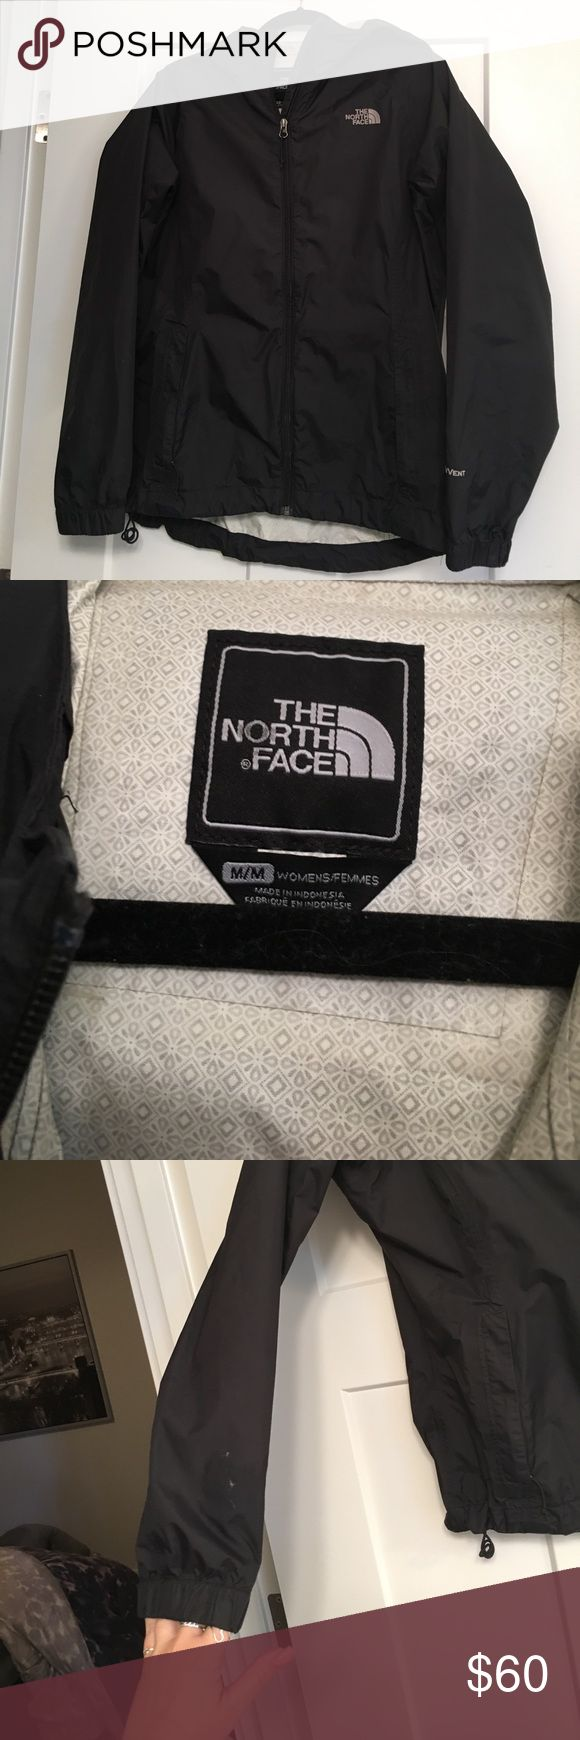 northface black rain jacket black north face rain jacket. size medium, good condition, stain on right sleeve ( see picture). North Face Jackets & Coats